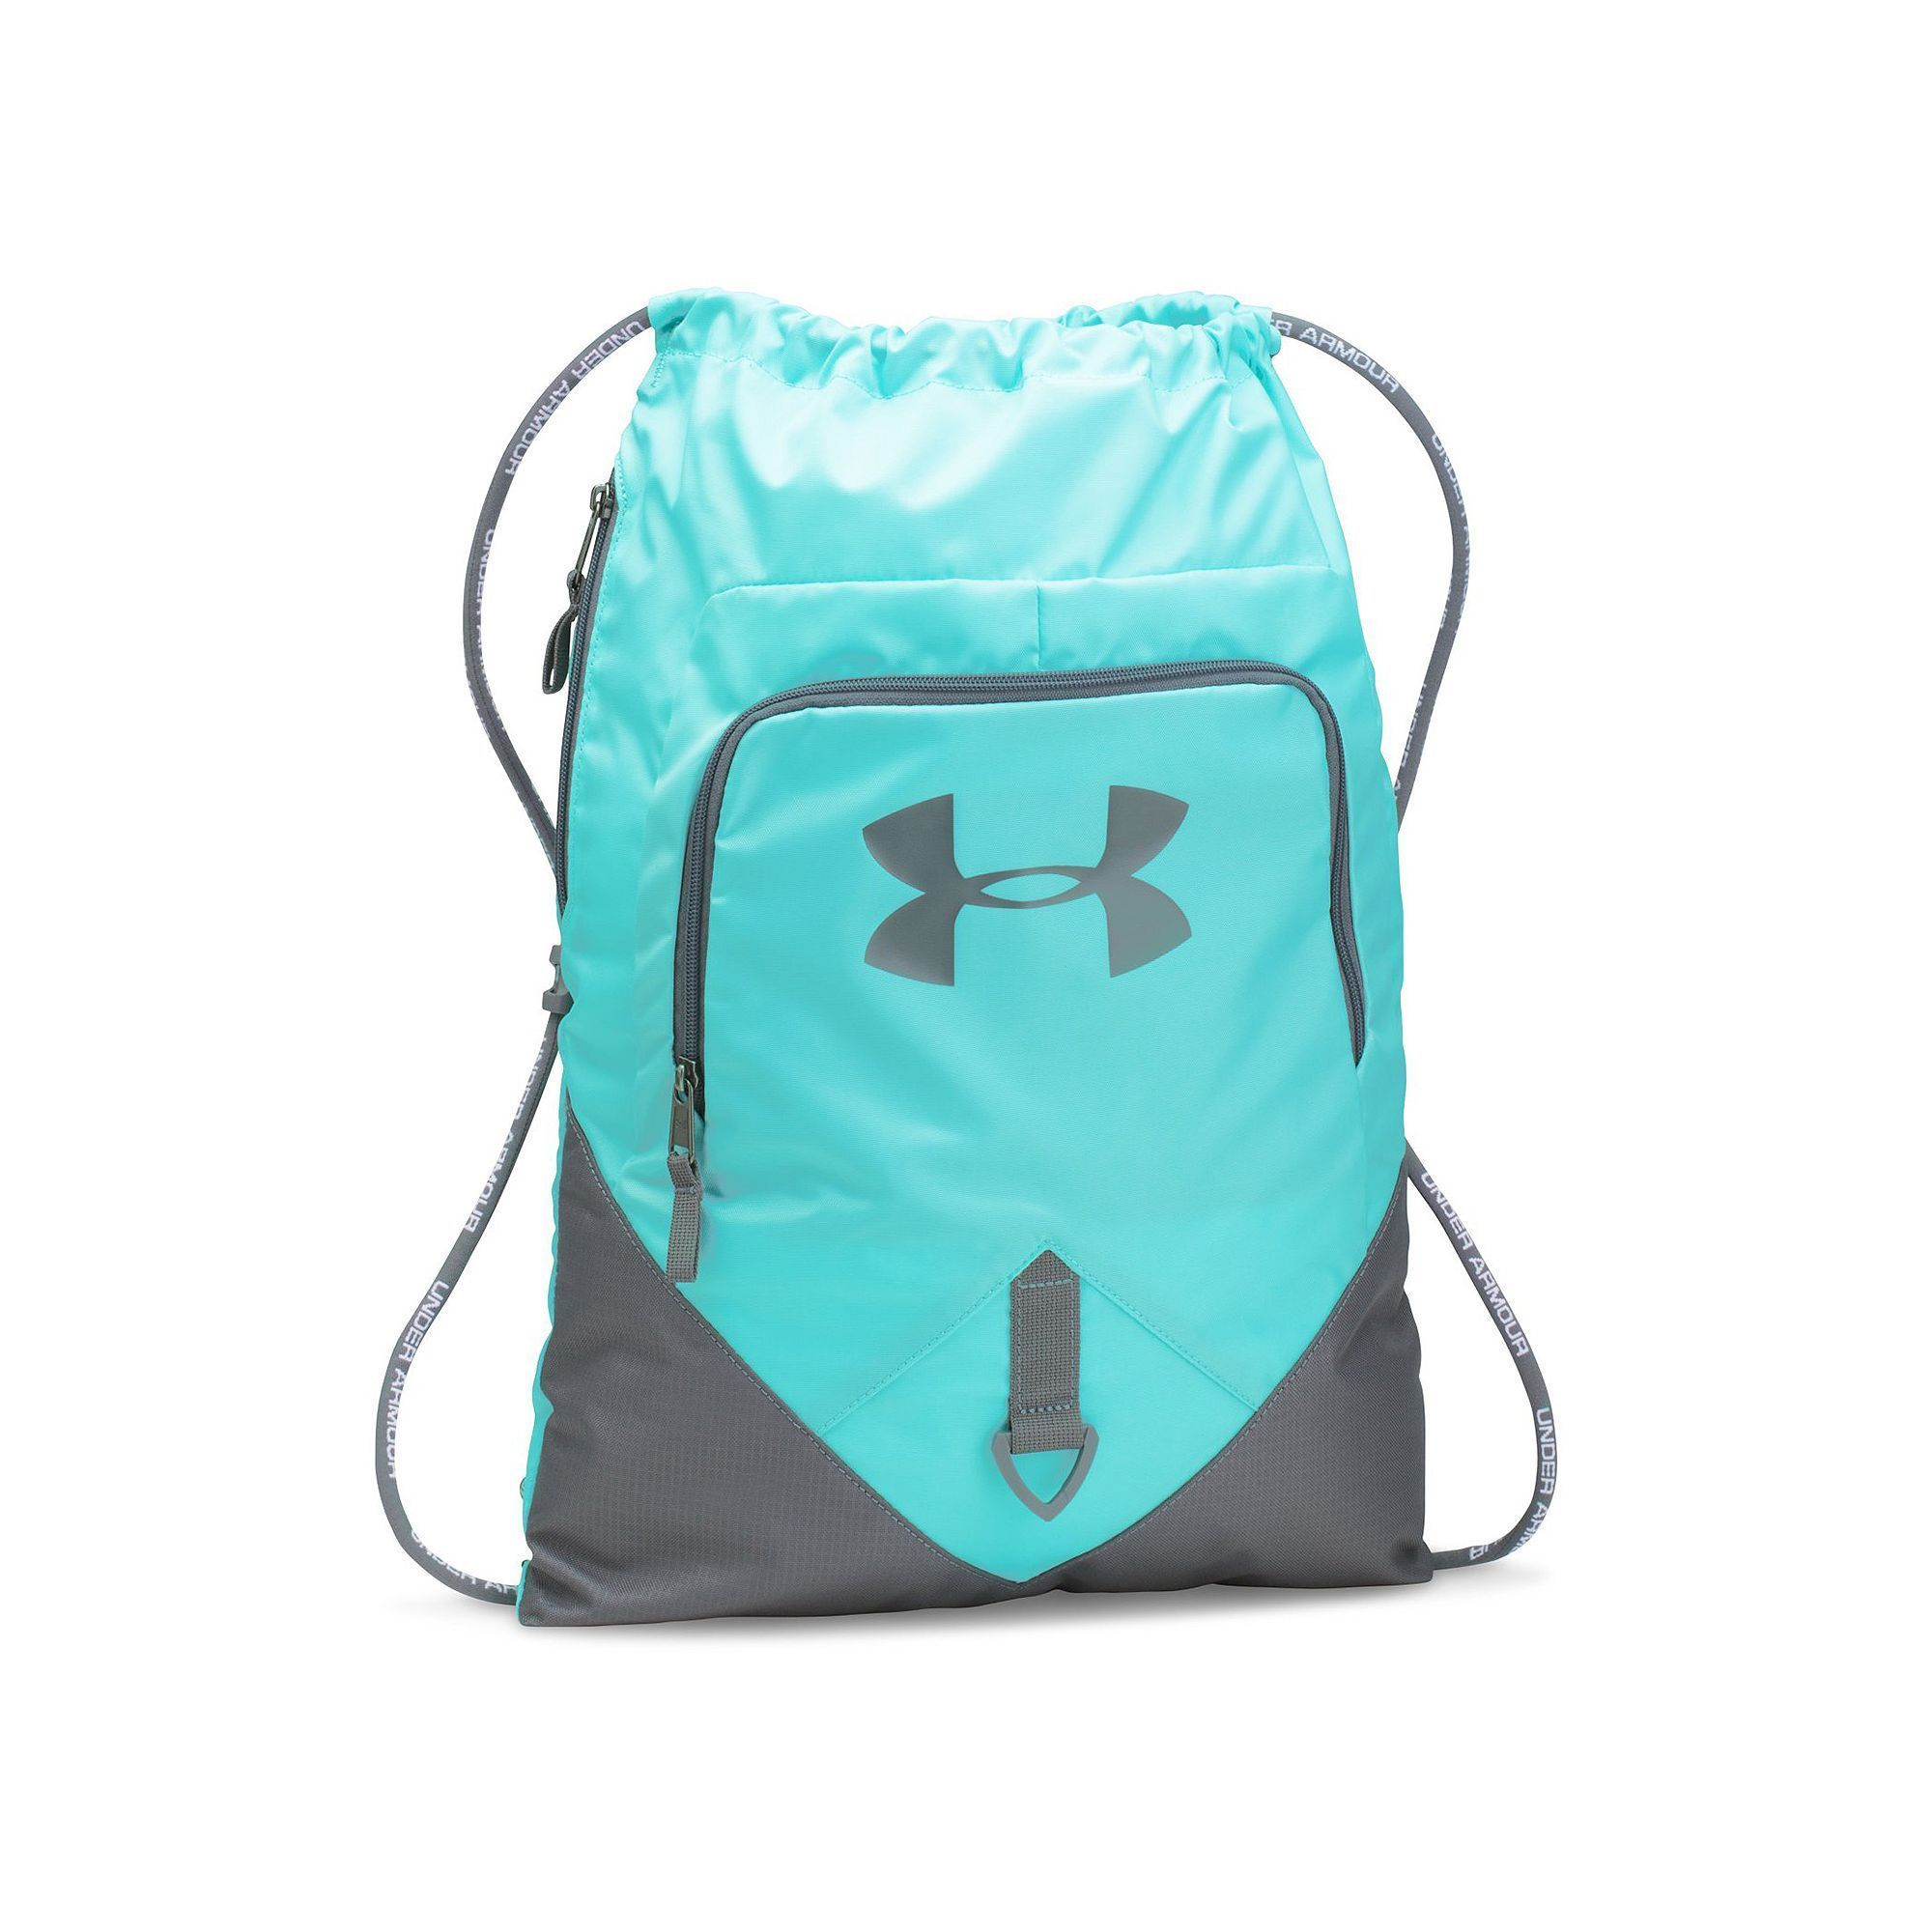 Under Armour Undeniable Drawstring Backpack 4c549c602e7f7